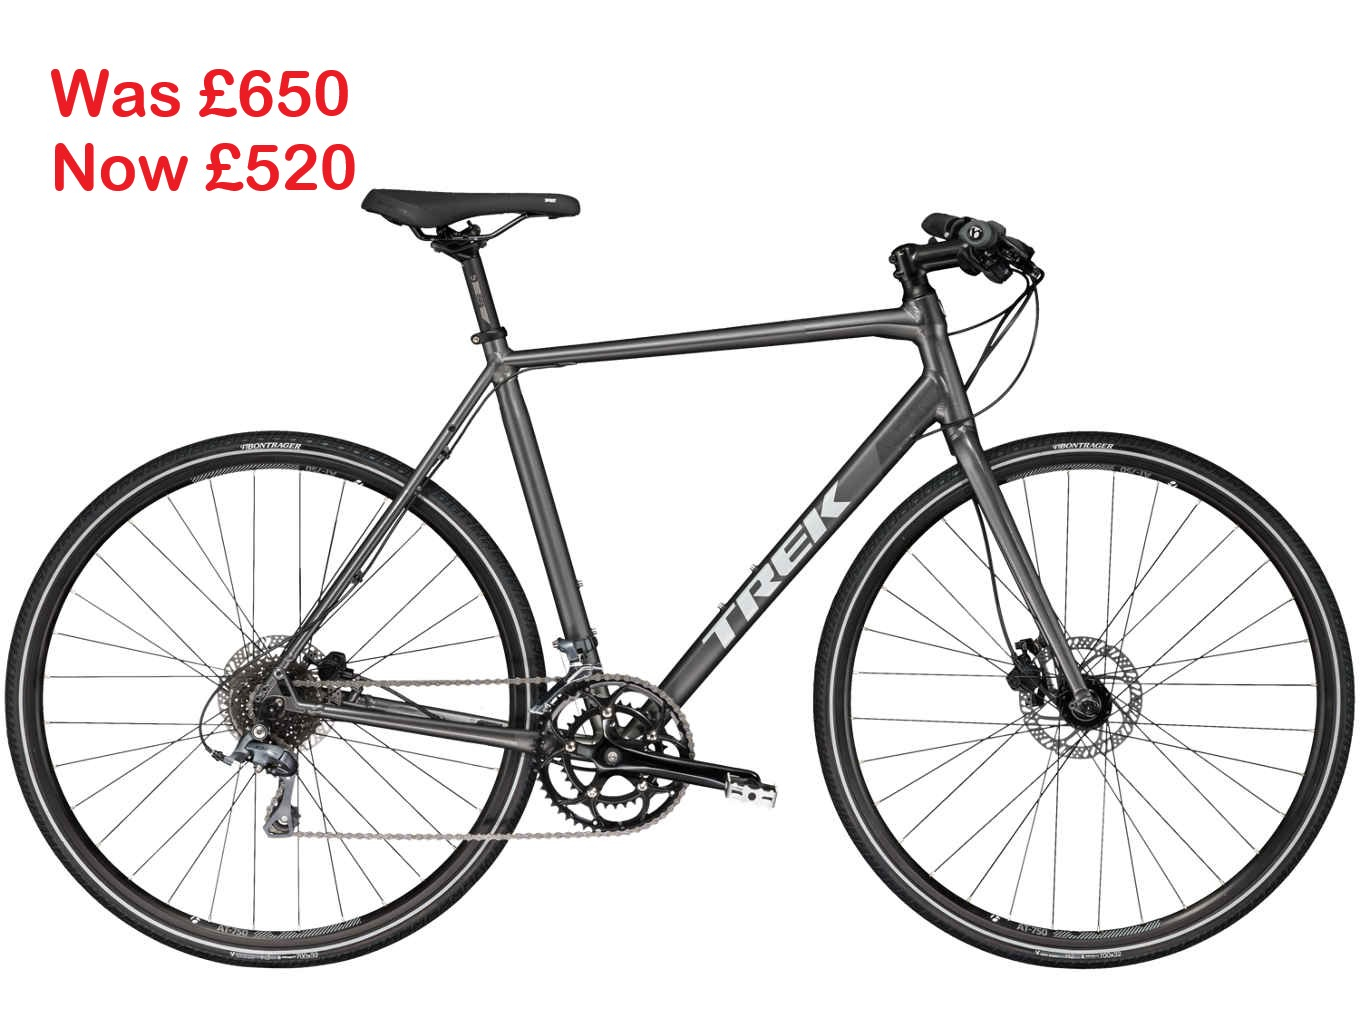 Zektor 2 2017 - Was £650 - Now £520